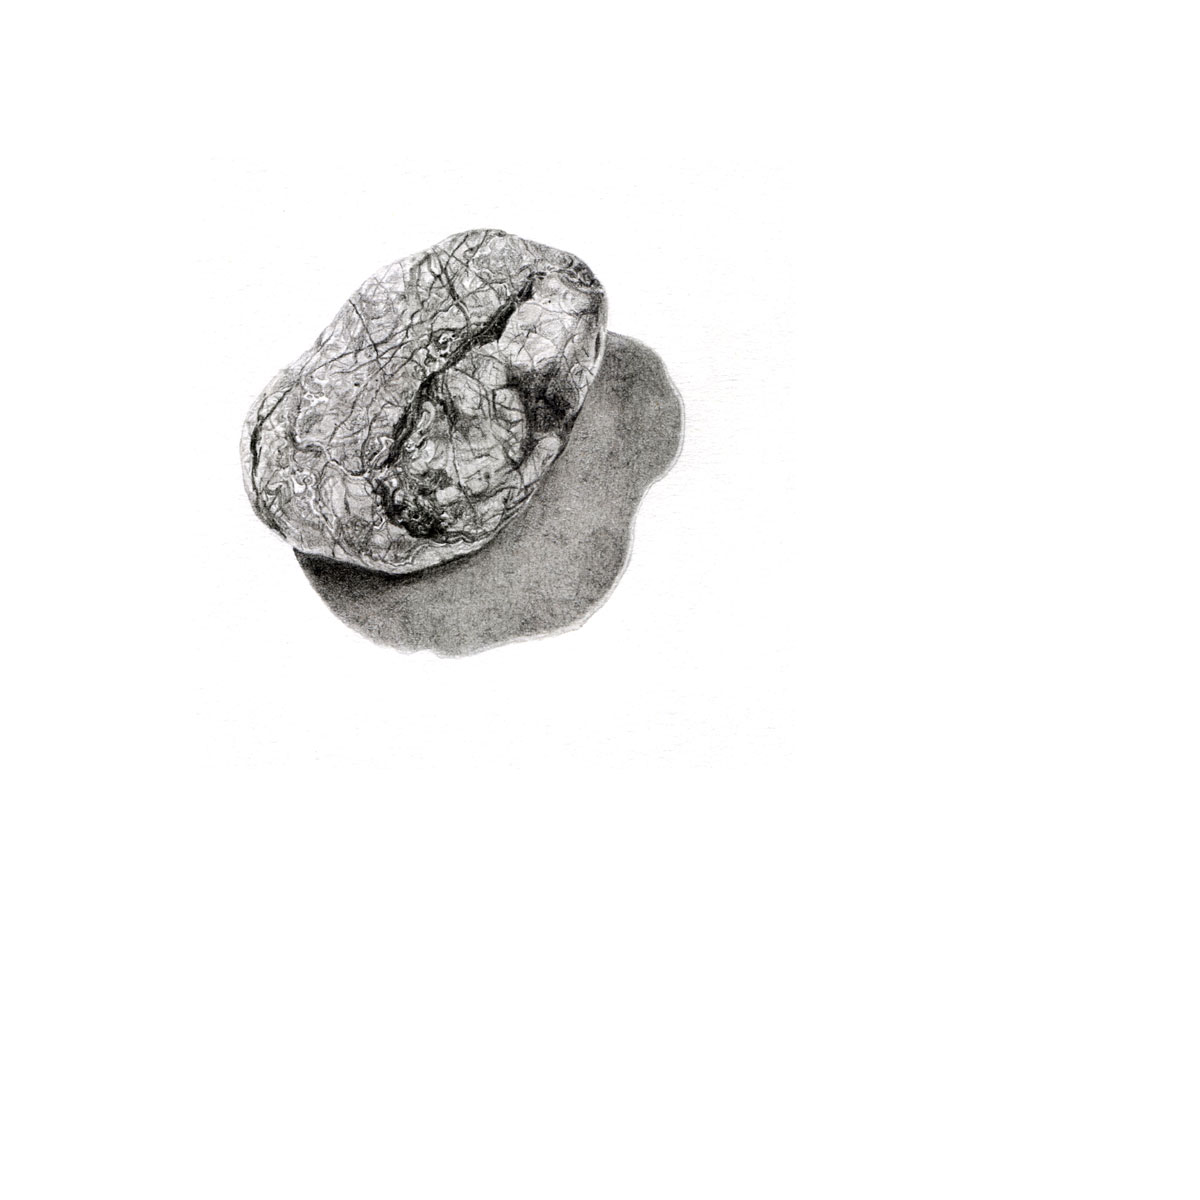 pencil drawing of lined pebble